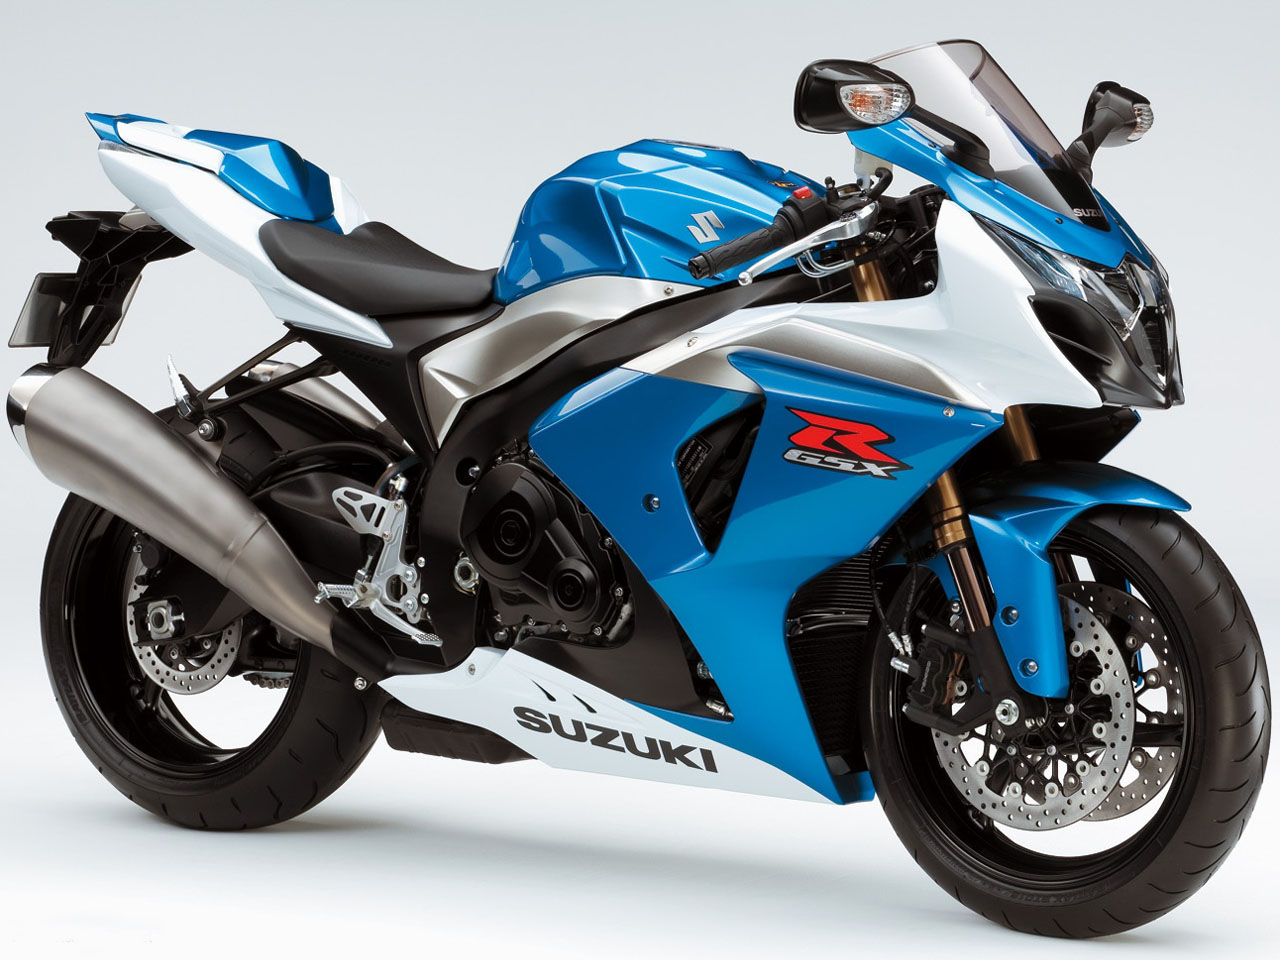 Suzuki Sports Bike Bike N Bikes All About Bikes